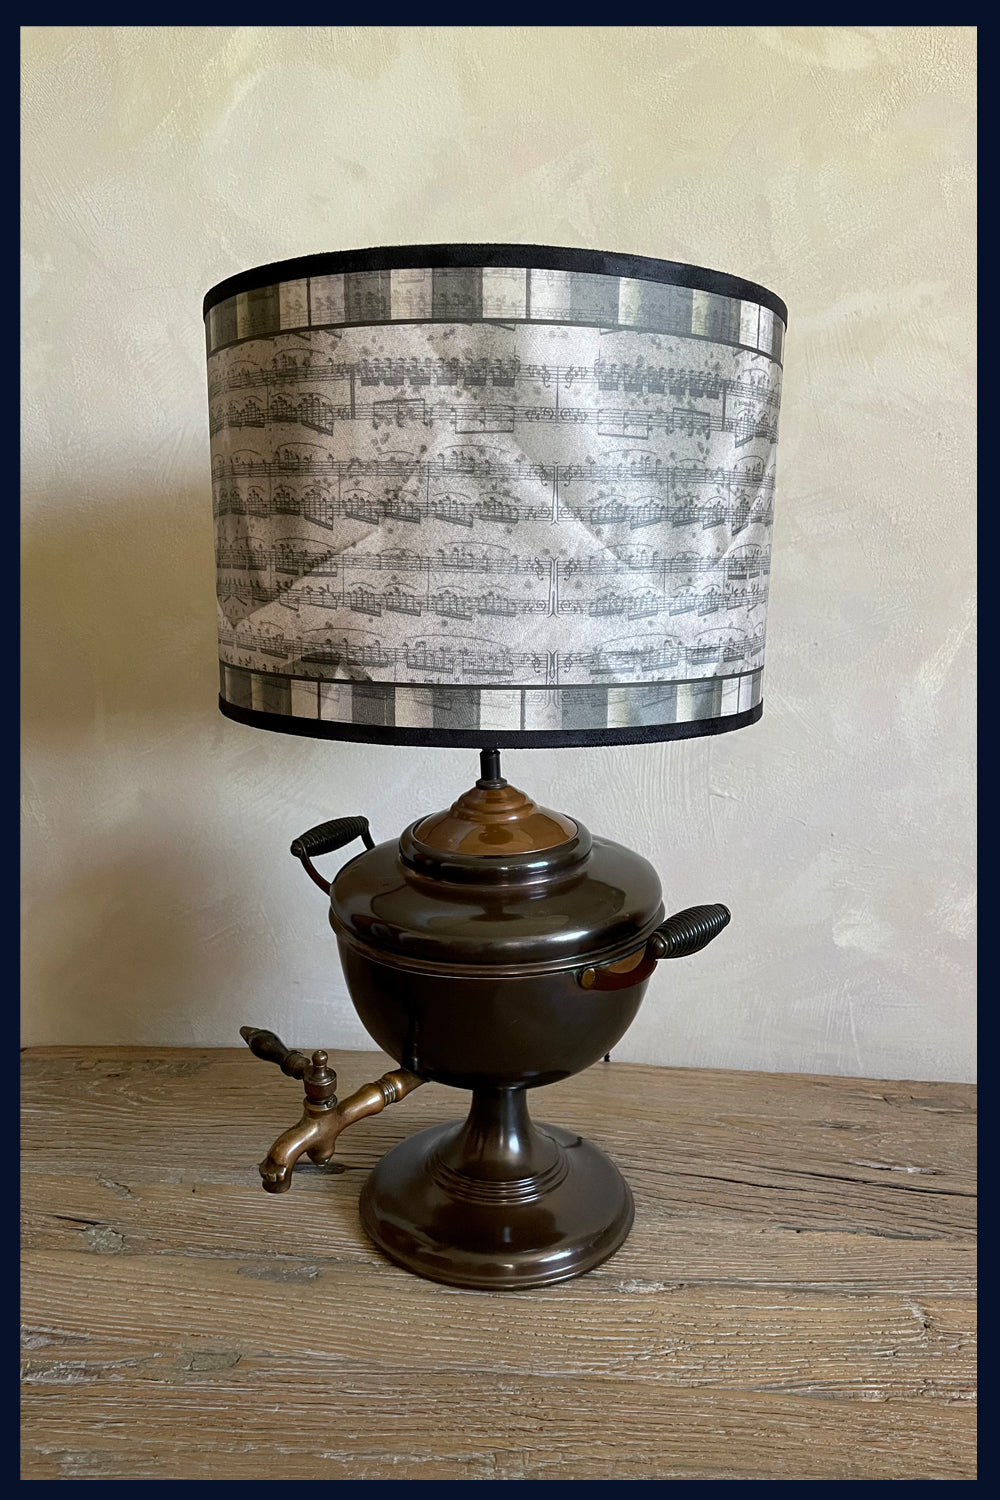 Fanfare - Limited Edition Lampshades Featuring Antique Music Scores & Old Piano Keys